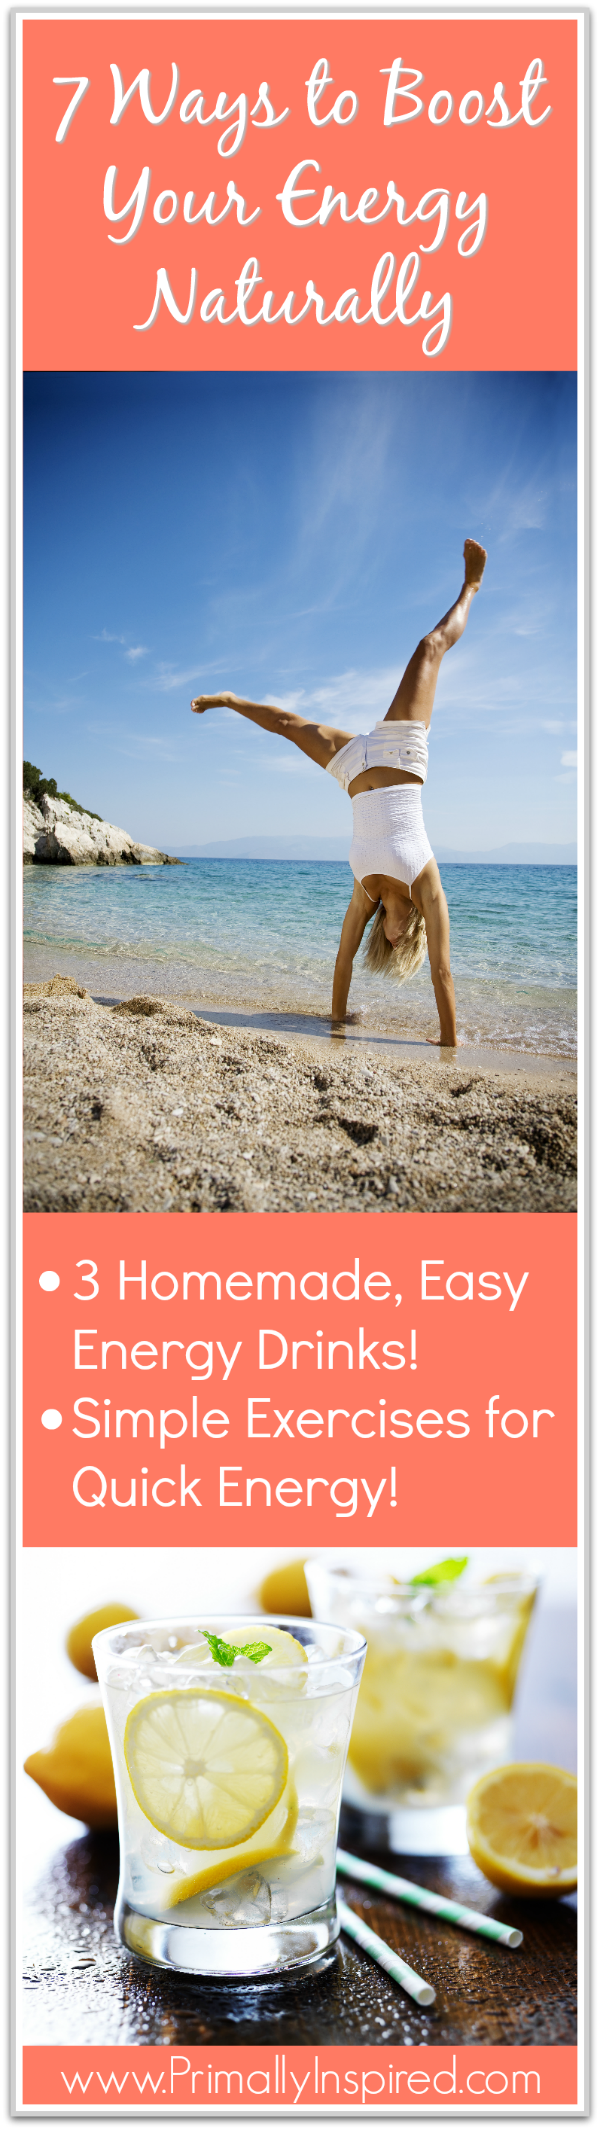 Get more energy naturally! Here's 7 natural energy boosts to increase your energy quickly when you're tired using easy, natural energy drink recipes, movement and harnessing the power of the mind.